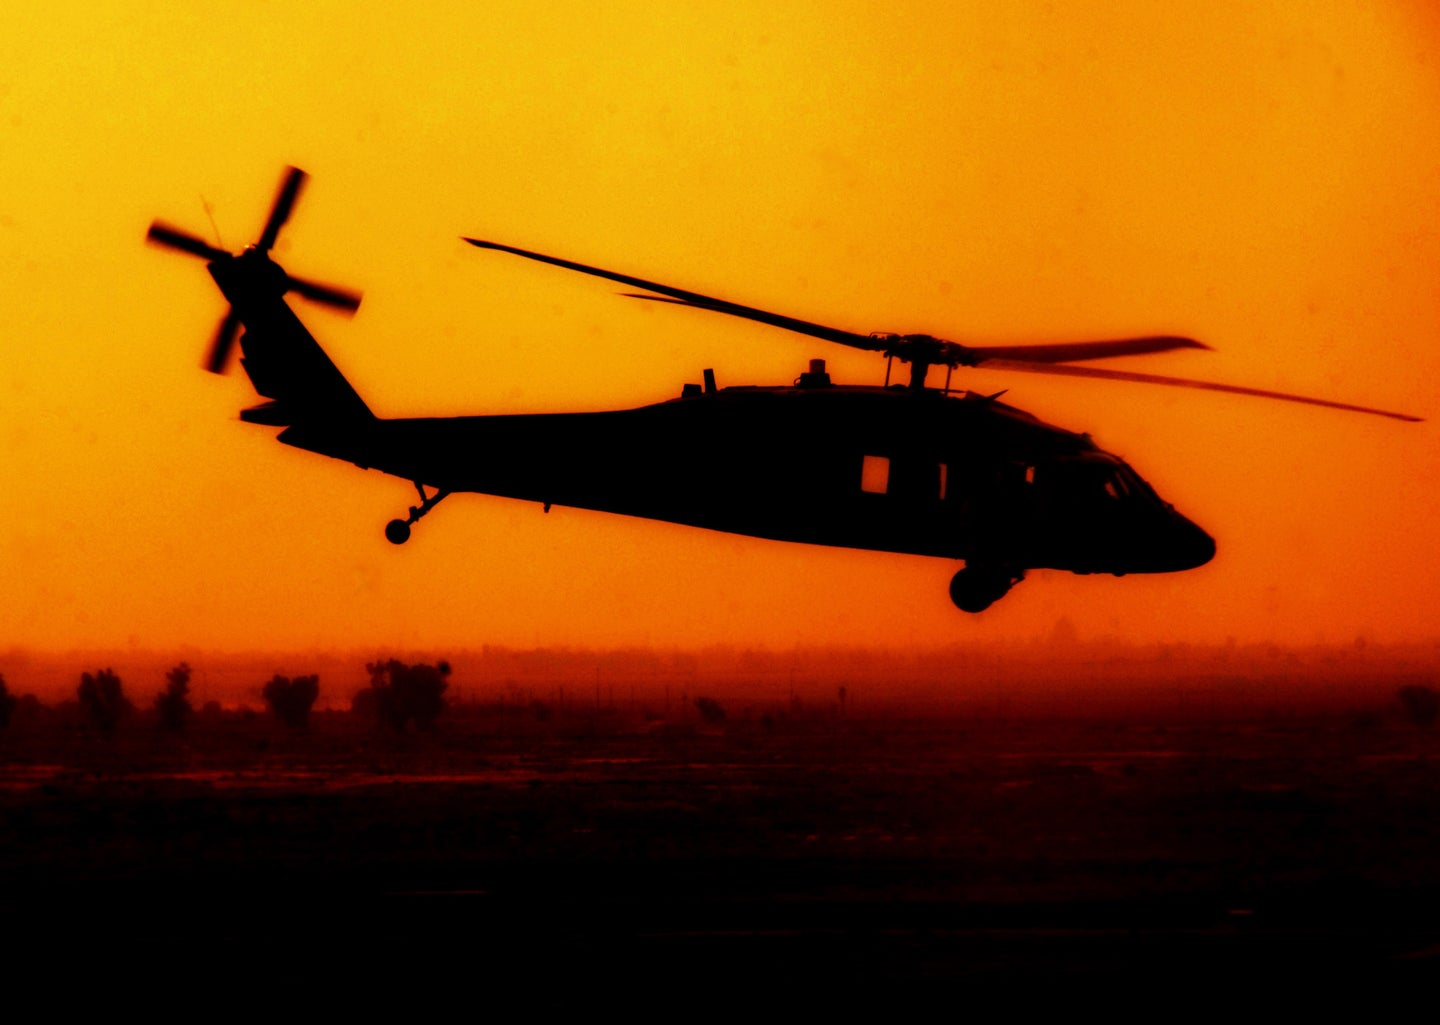 A flying Black Hawk helicopter in Iraq.